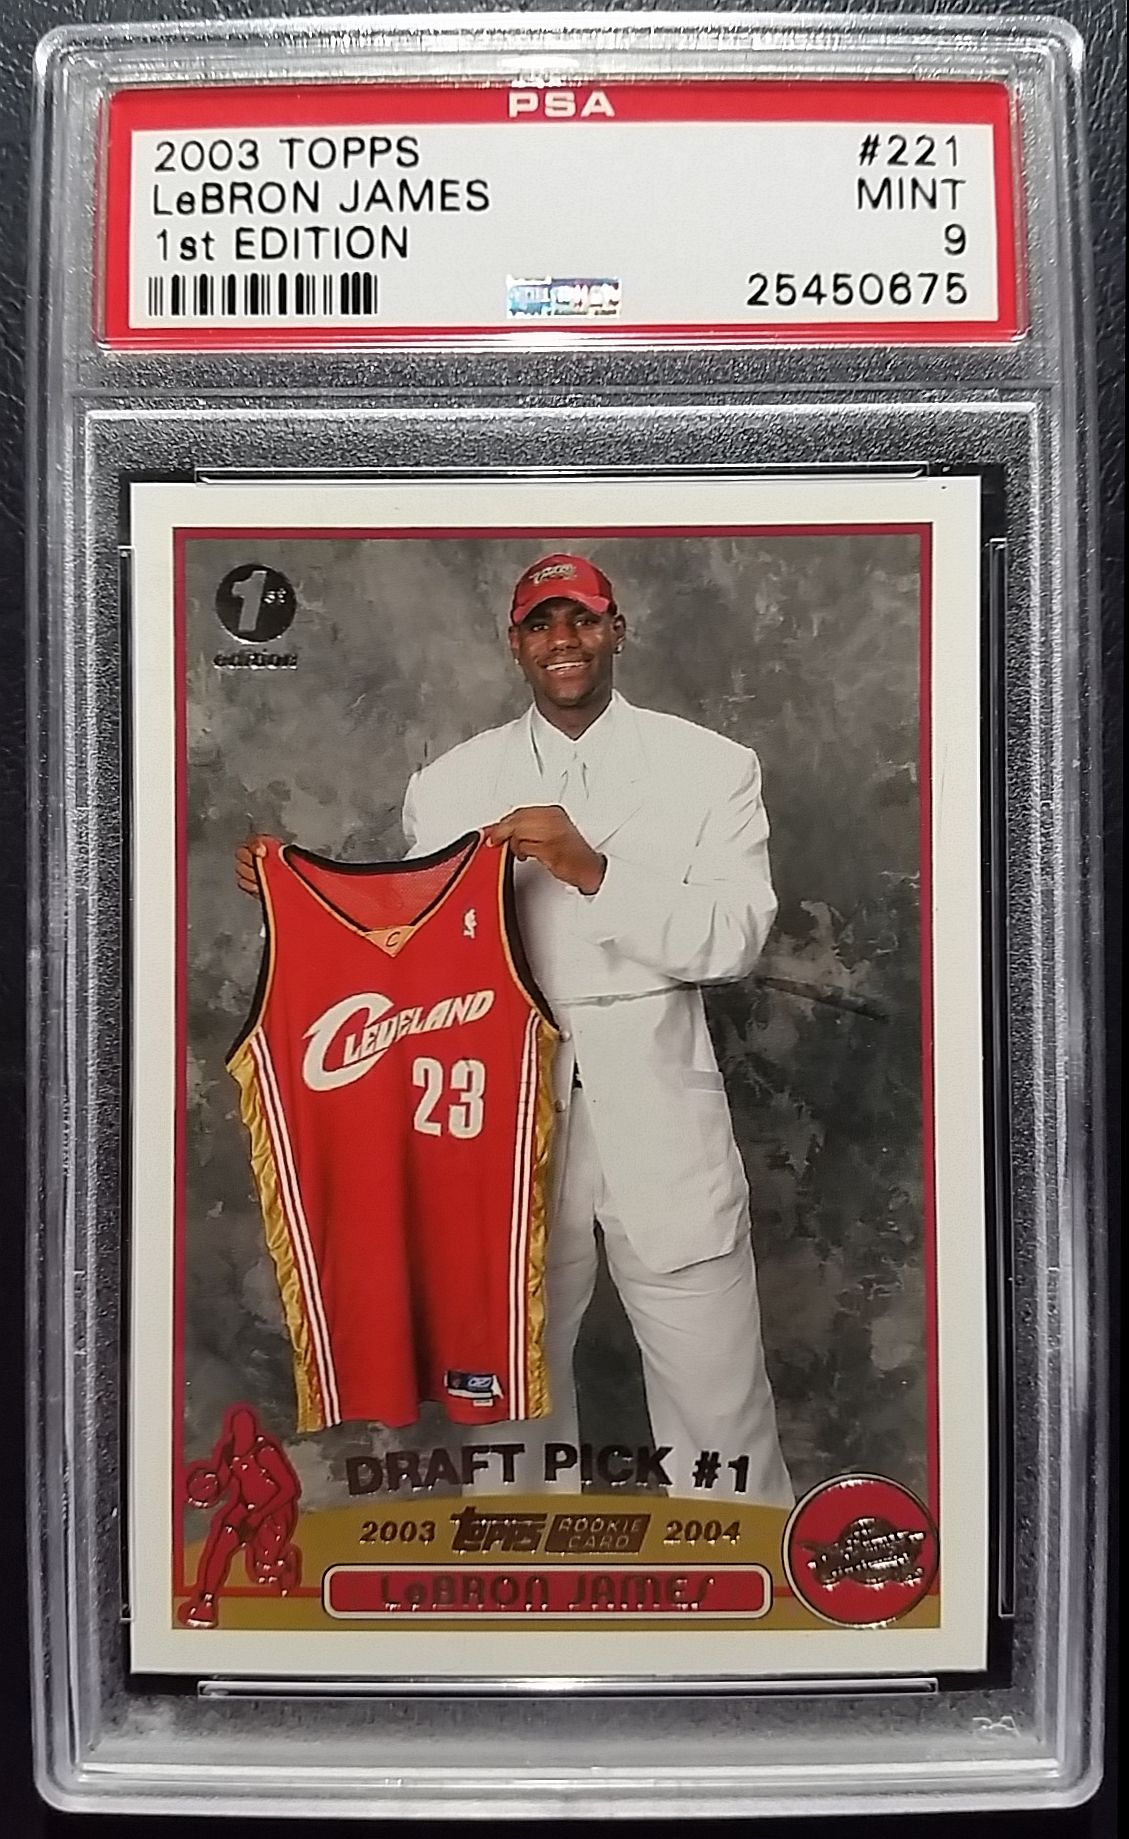 2003 Lebron James Topps 1st Edition Rookie Card Graded Mint